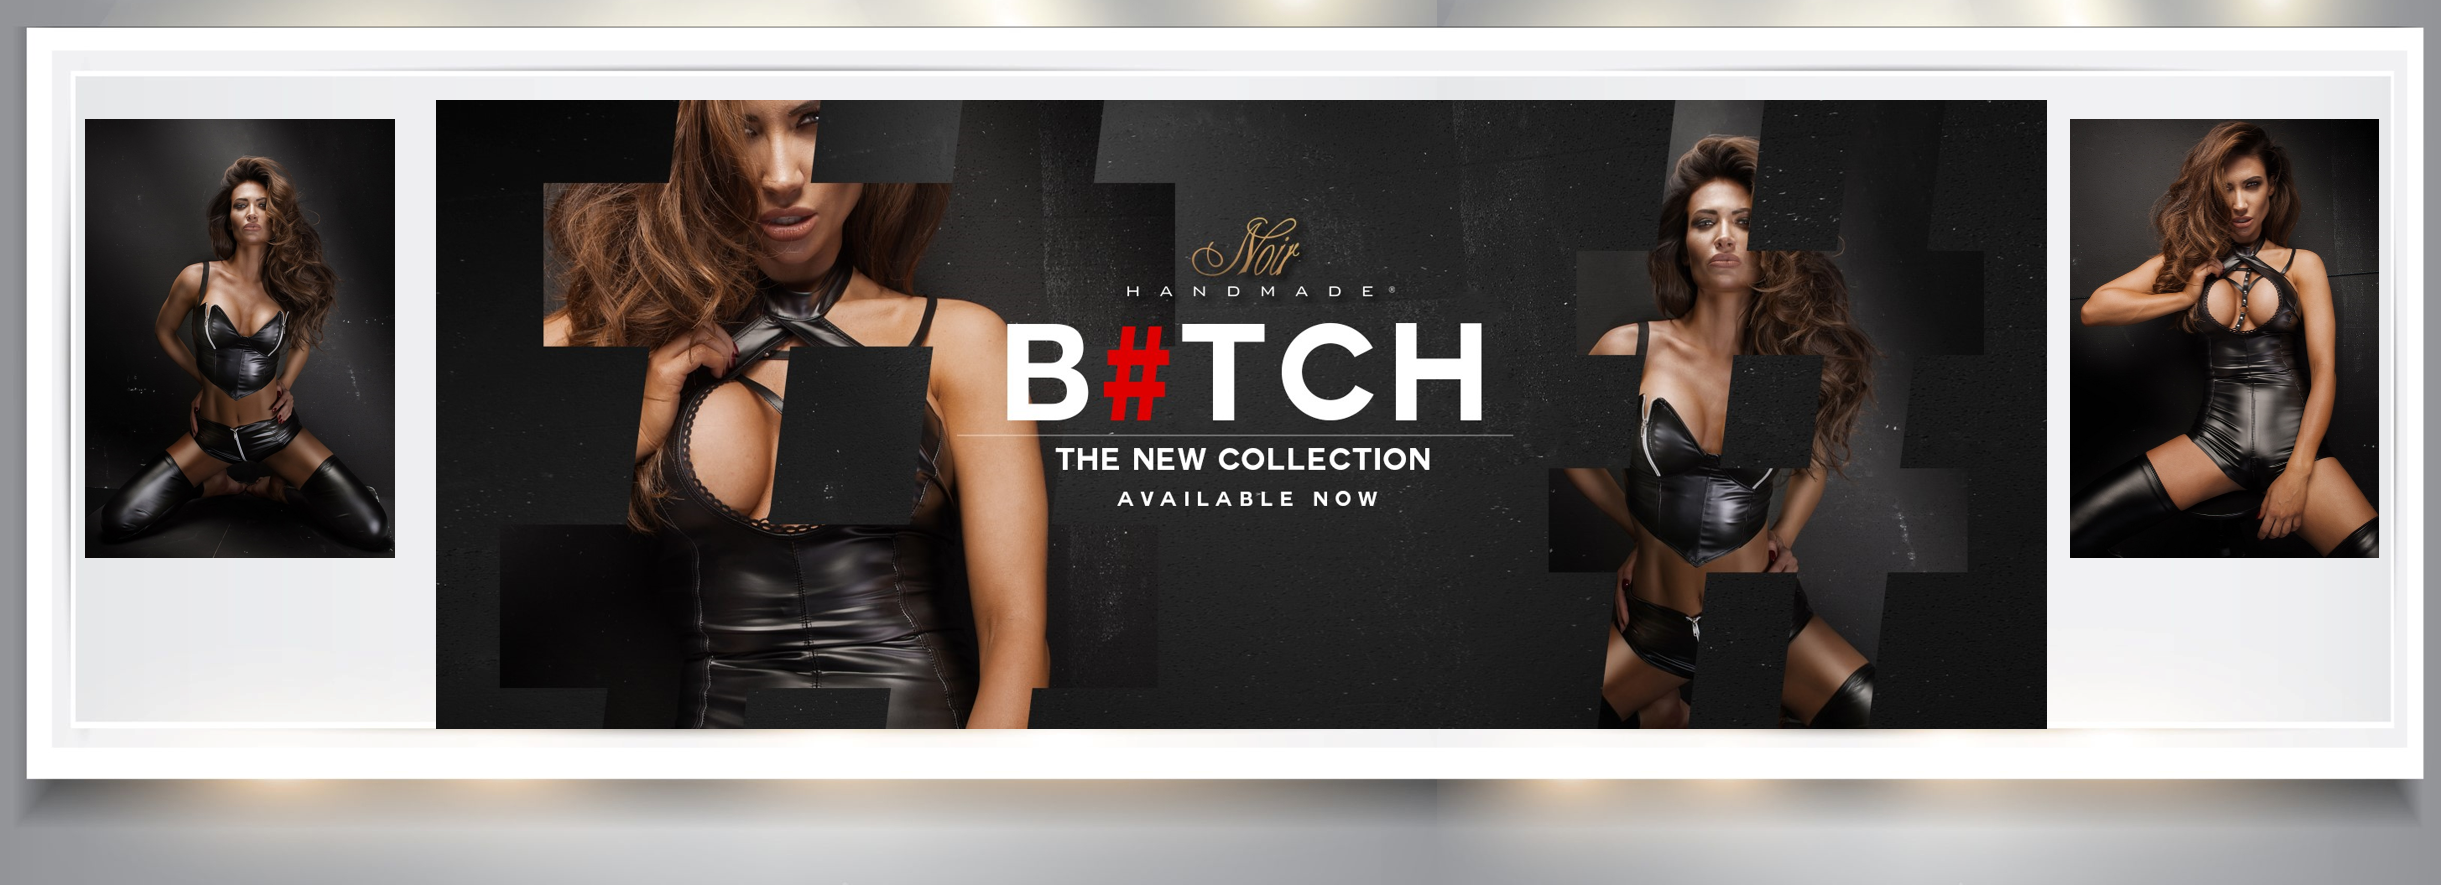 "Noir Handmade - New Collection ""BITCH"""